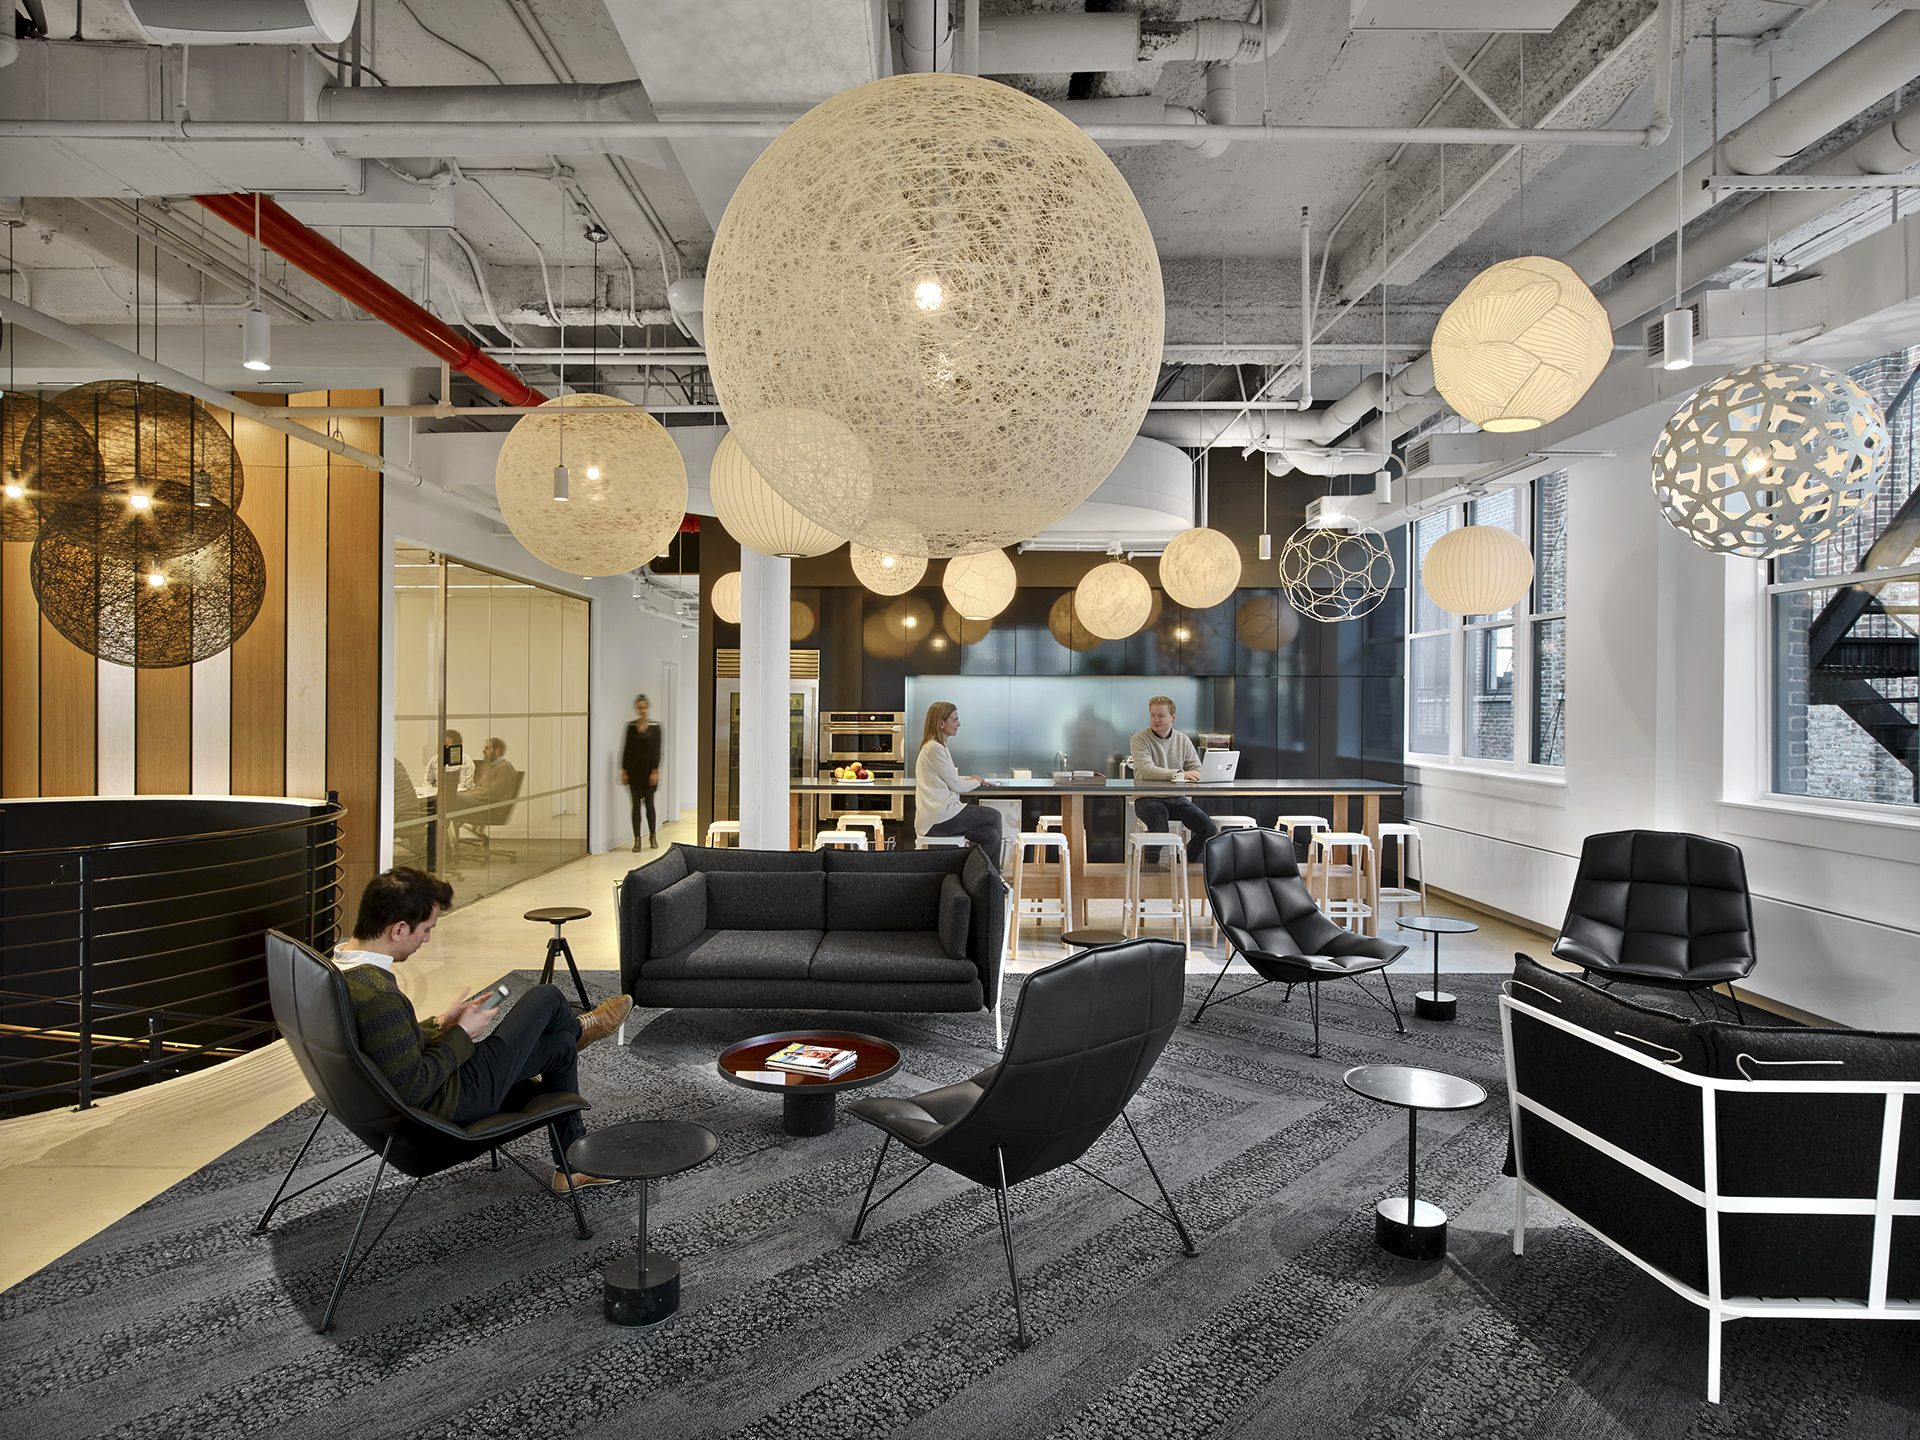 Large employee and client cafe space at the new Peloton headquarters